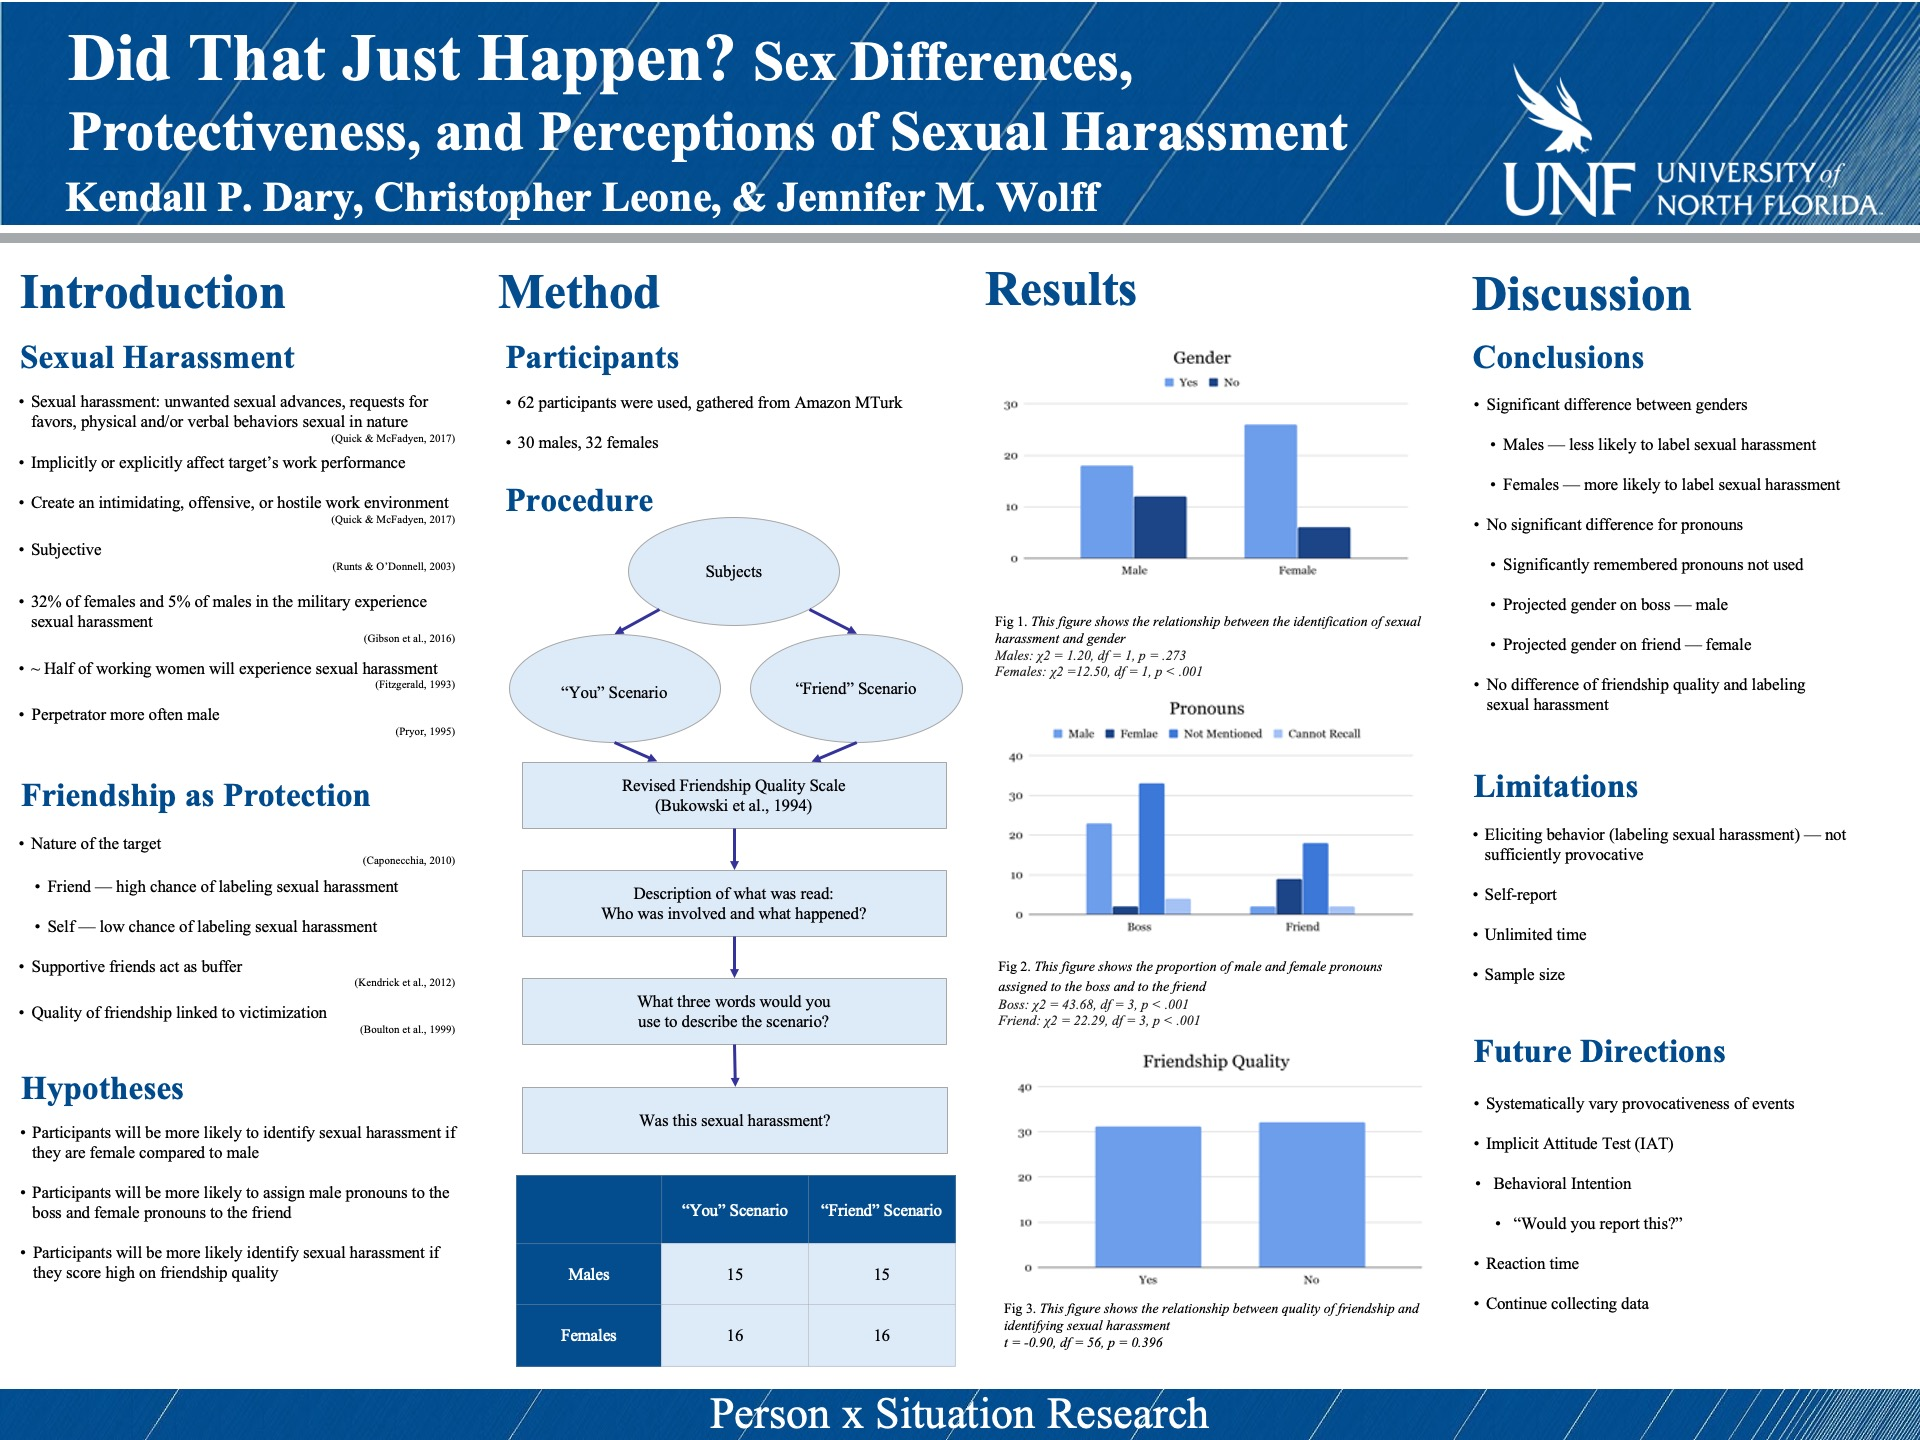 Did That Just Happen? Sex Differences, Protectiveness, and Perceptions of Sexual Harassment poster